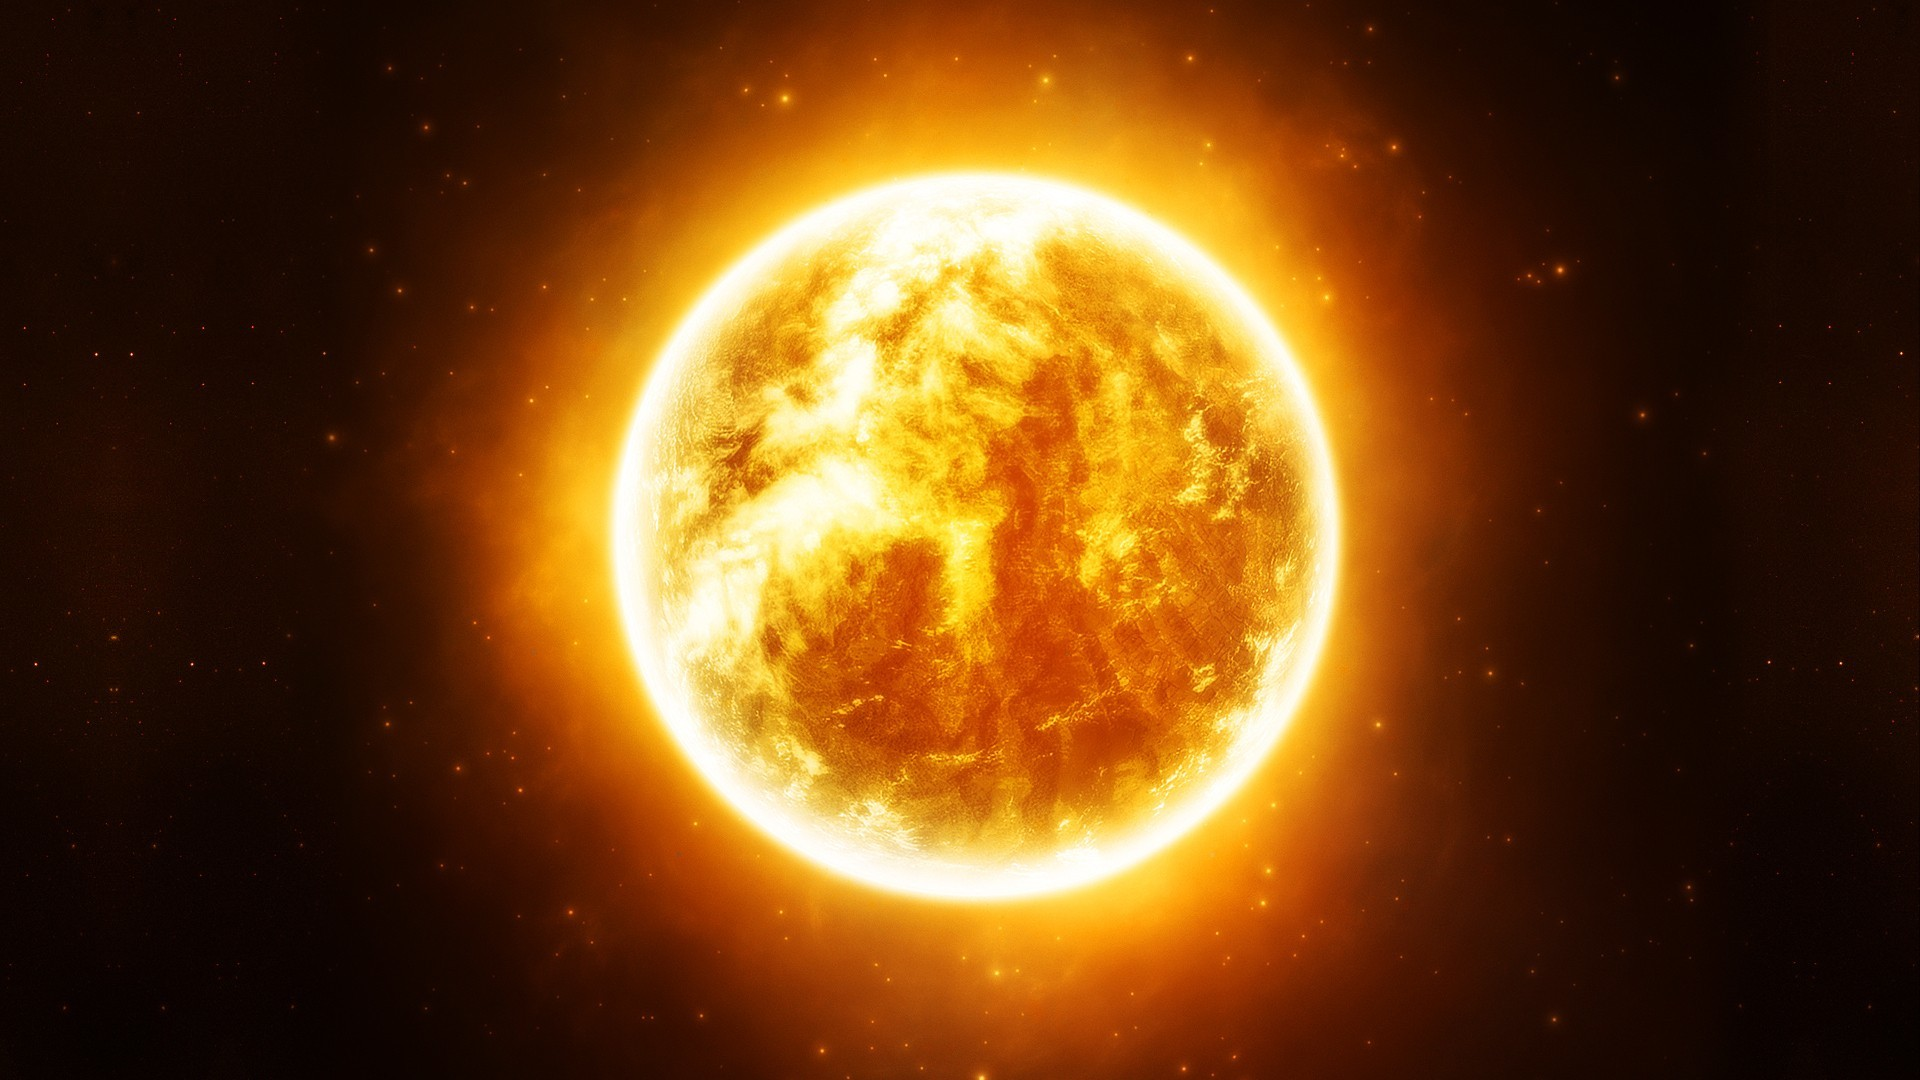 sun outer space Stars HD Wallpaper